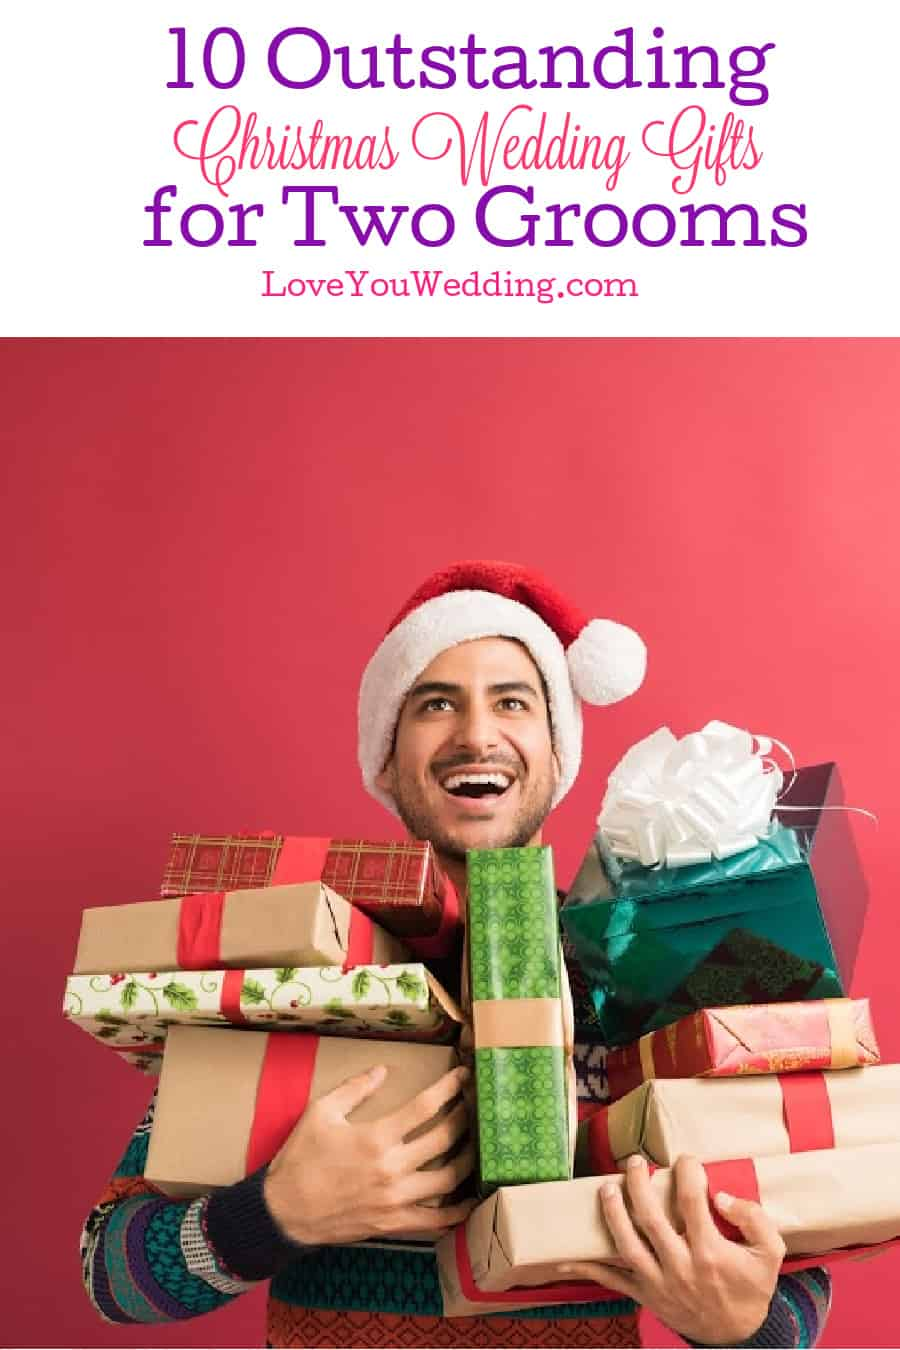 On the hunt for some outstanding Christmas wedding gifts for two grooms? Come join us! We found 10 ideas that will warm their hearts!